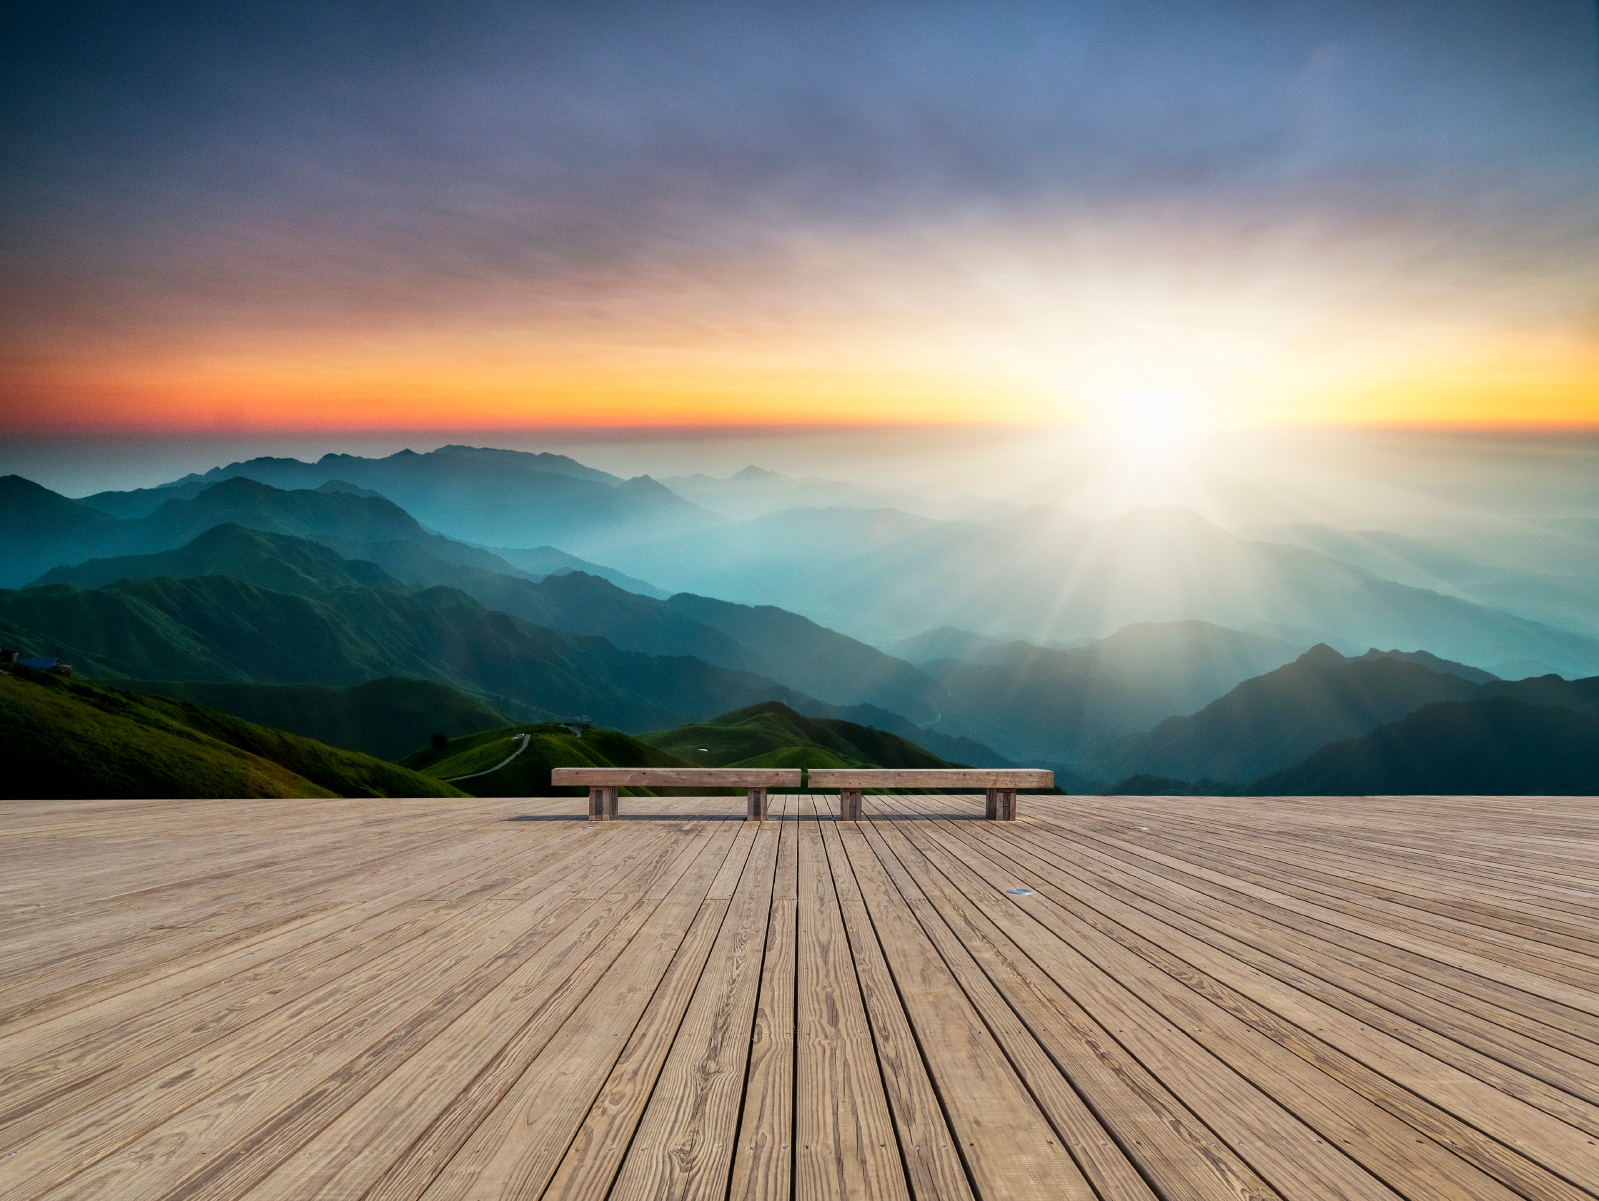 istock_photo_bench_mountains.jpeg